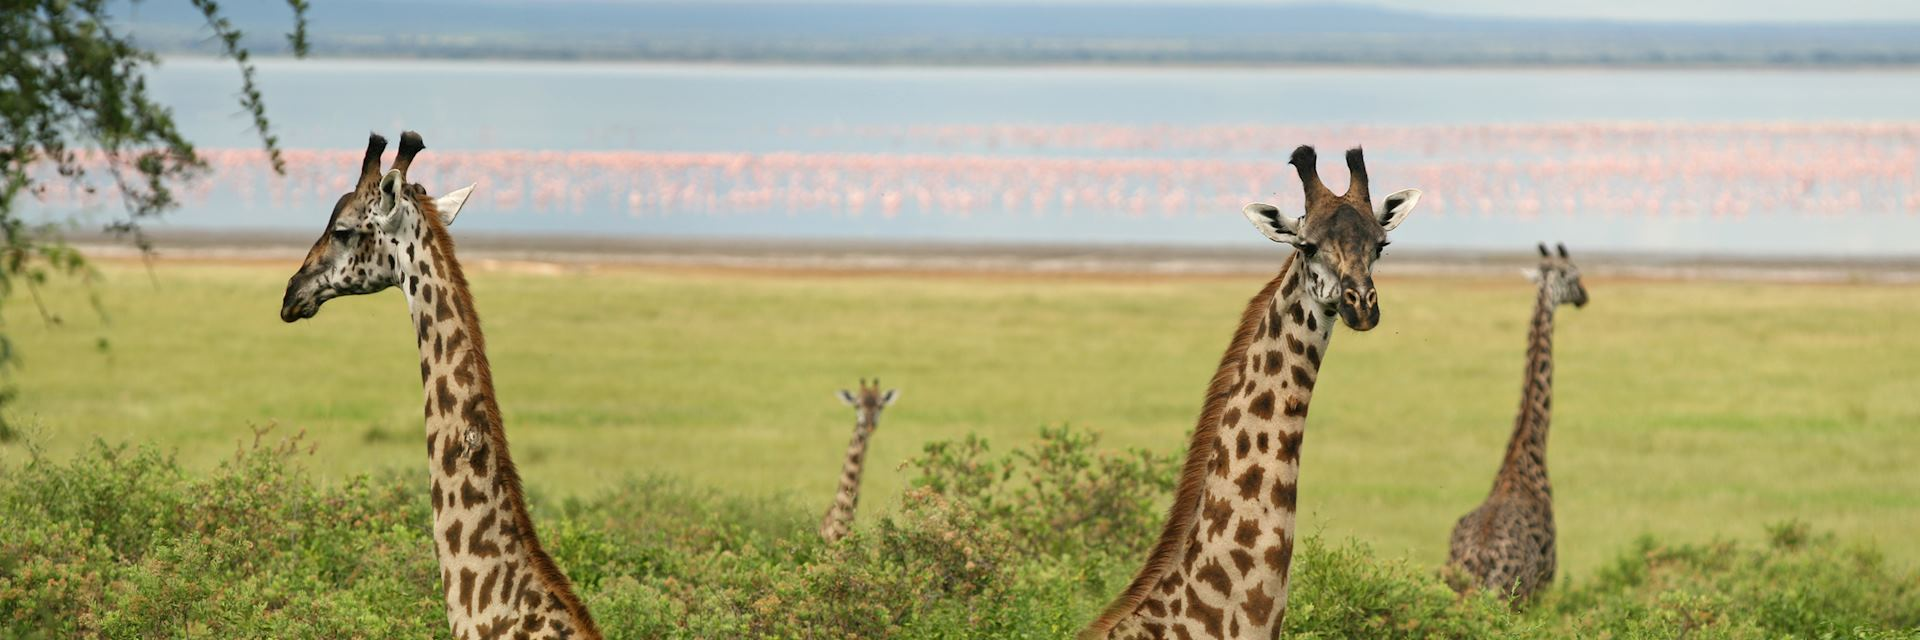 Giraffe in Lake Manyara National Park